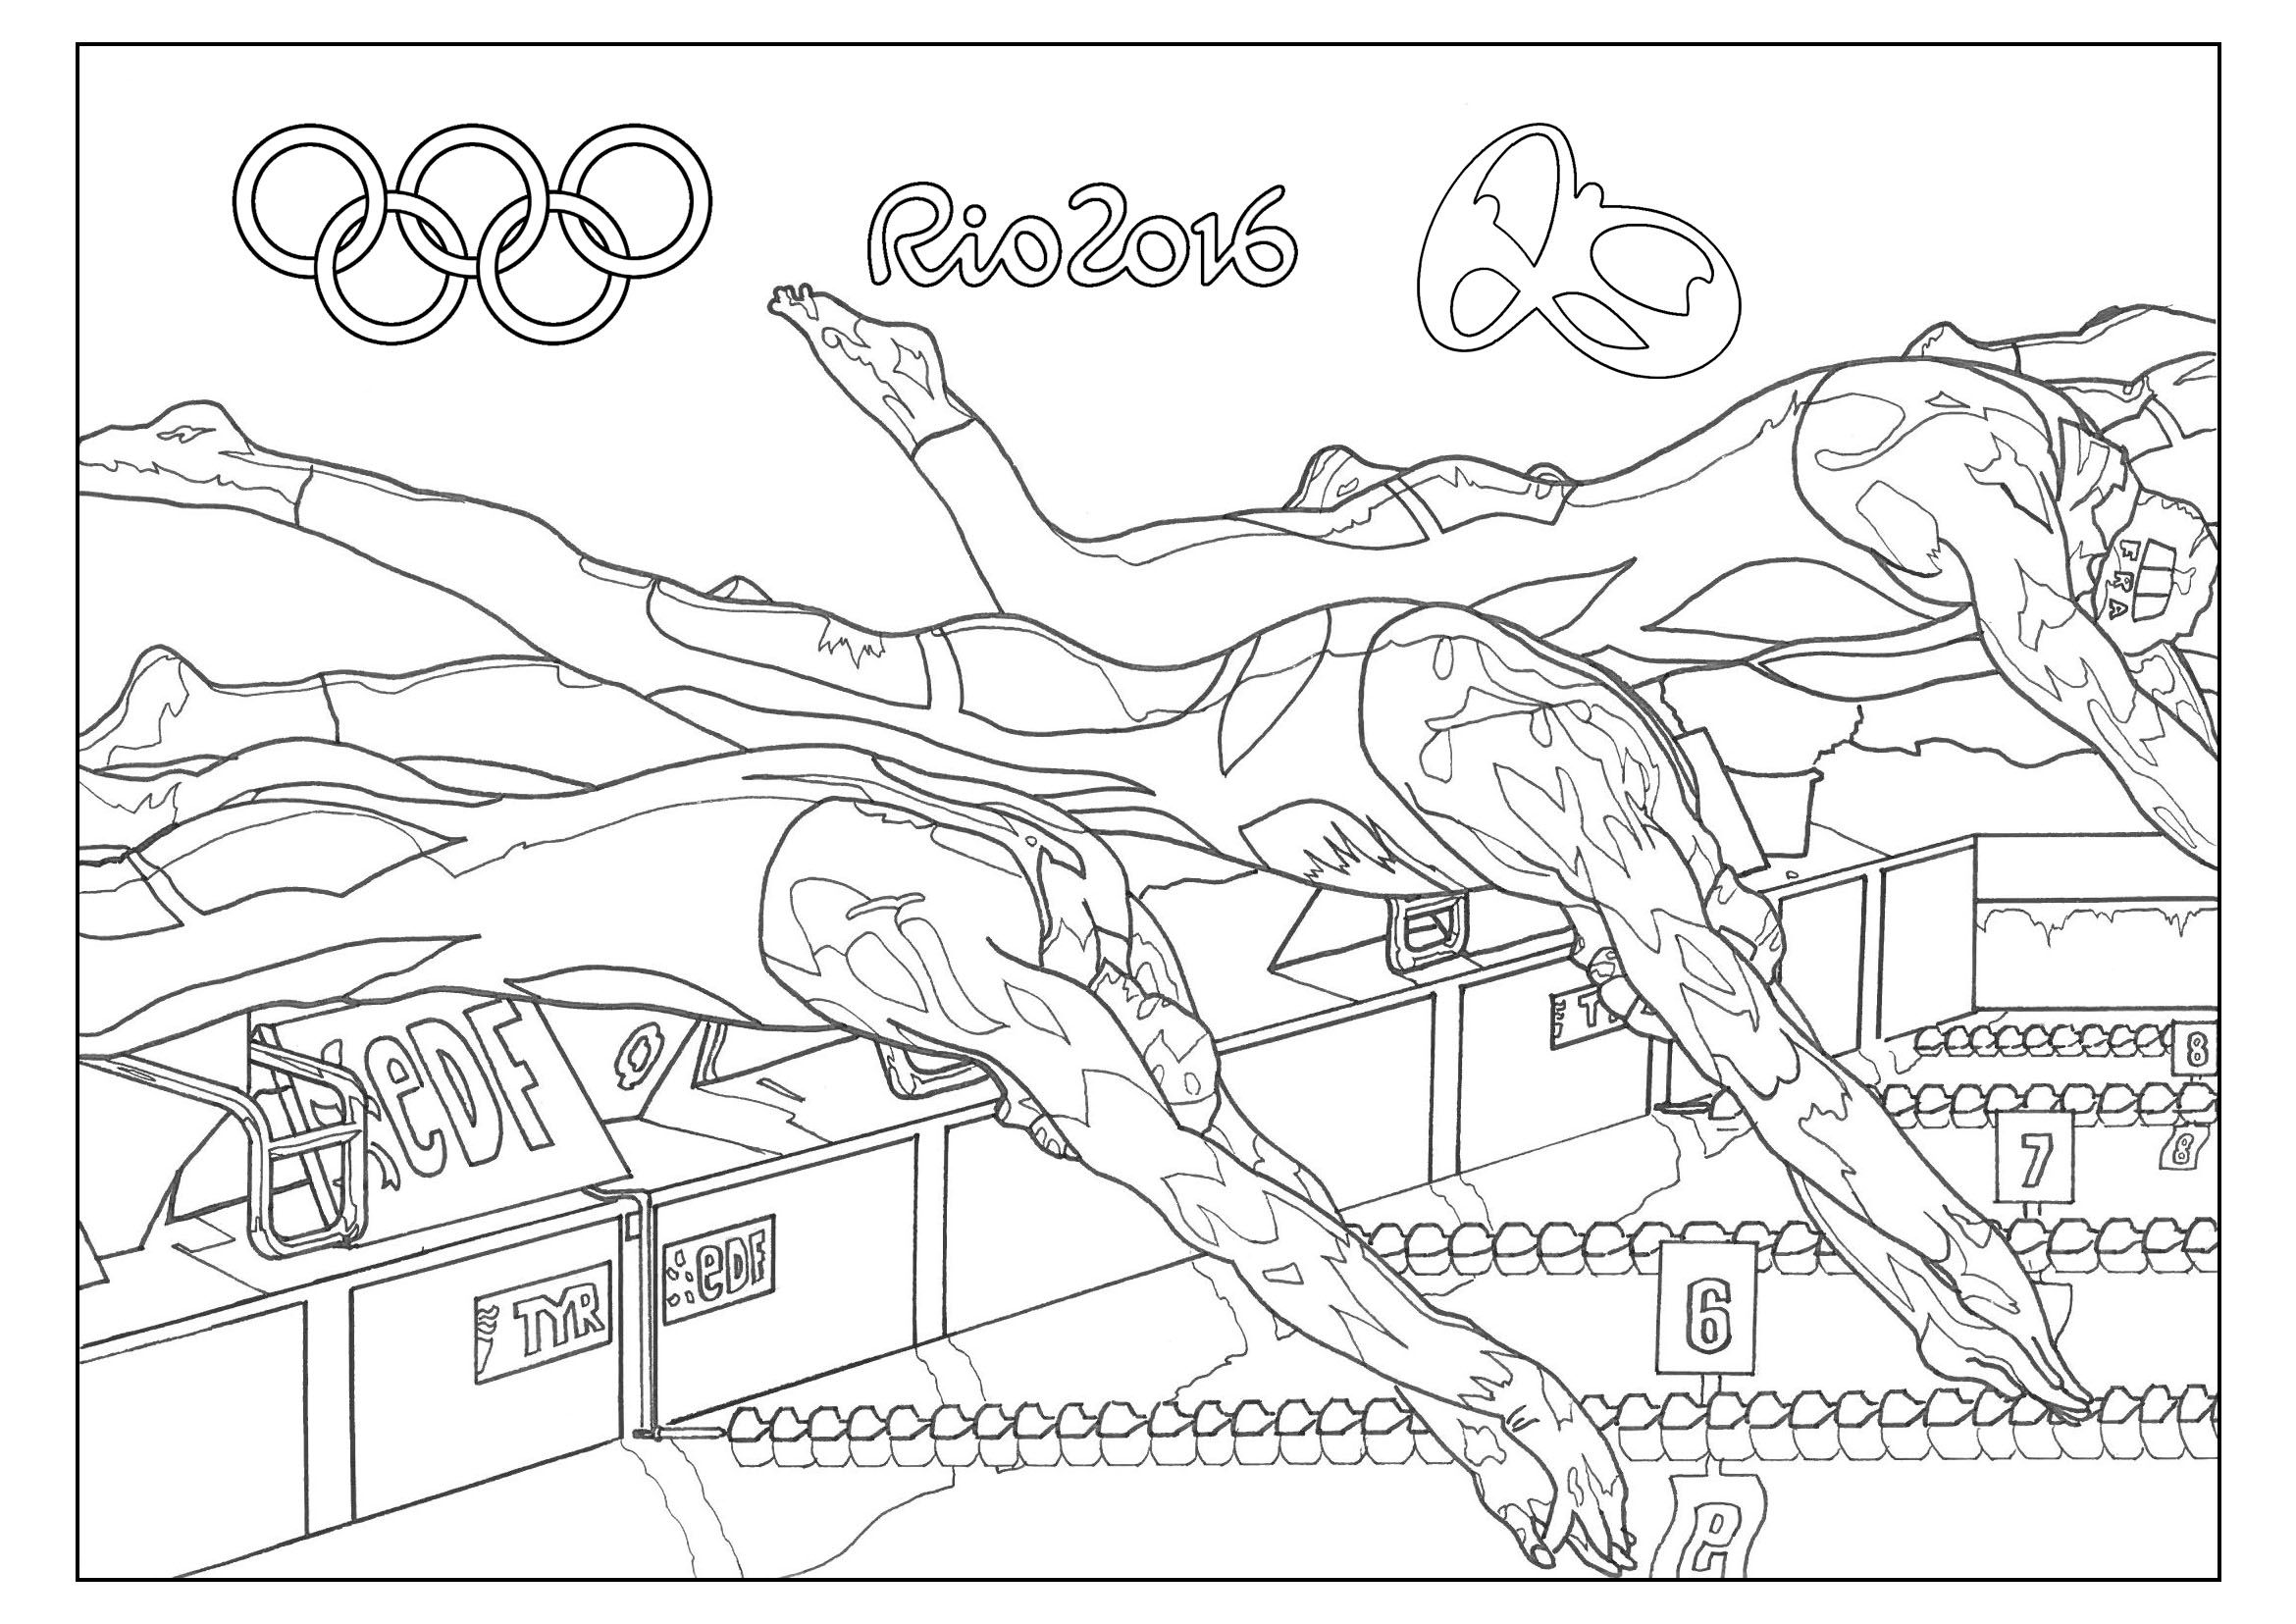 Best 25 swimming olympic event ideas on pinterest diving Free Mermaid Printable Coloring Pages Quotes Coloring Pages Easter Printable Coloring Pages